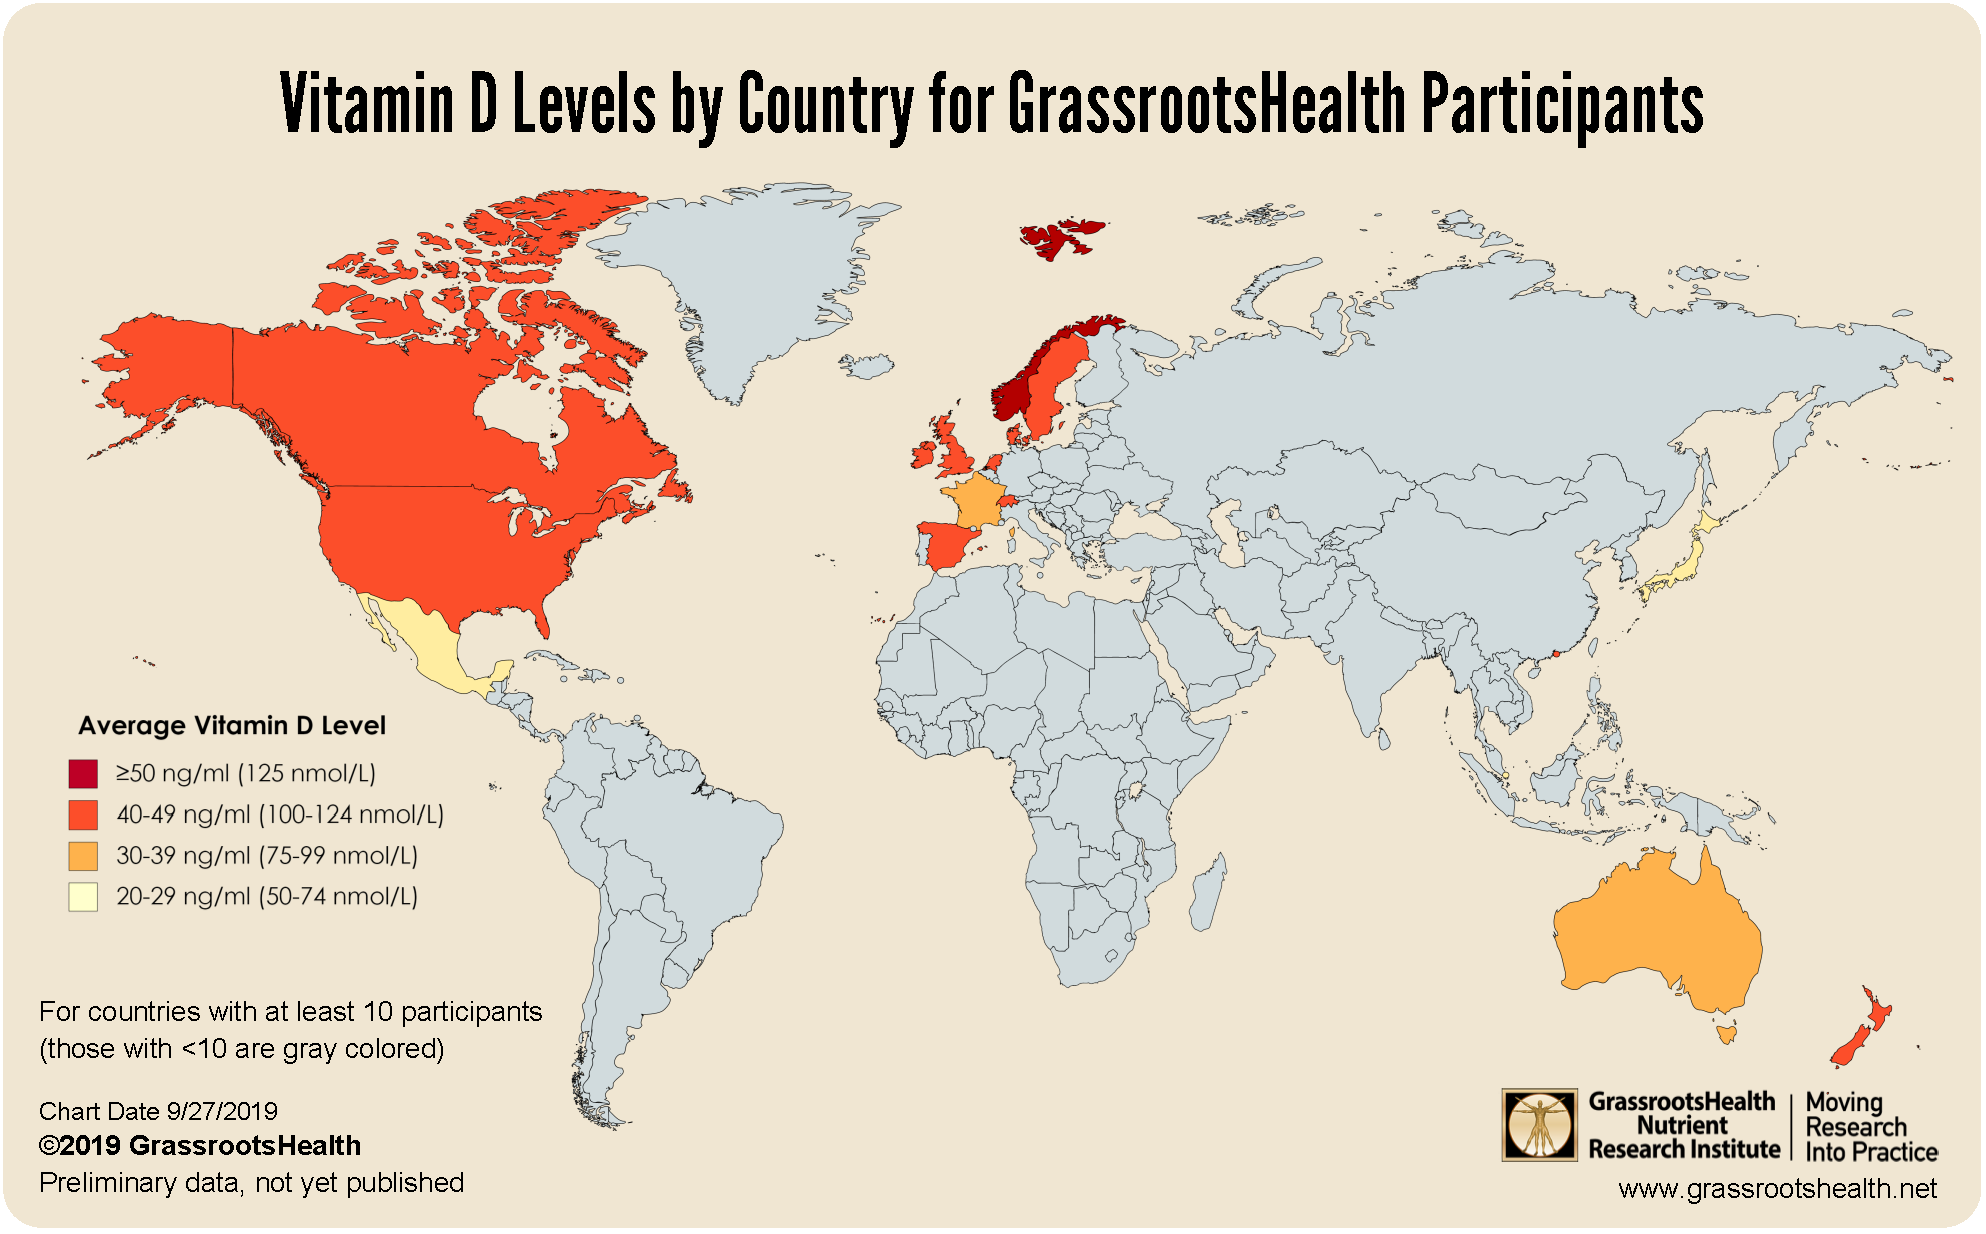 Average Vitamin D Levels by Location among GrassrootsHealth Participants -  GrassrootsHealth